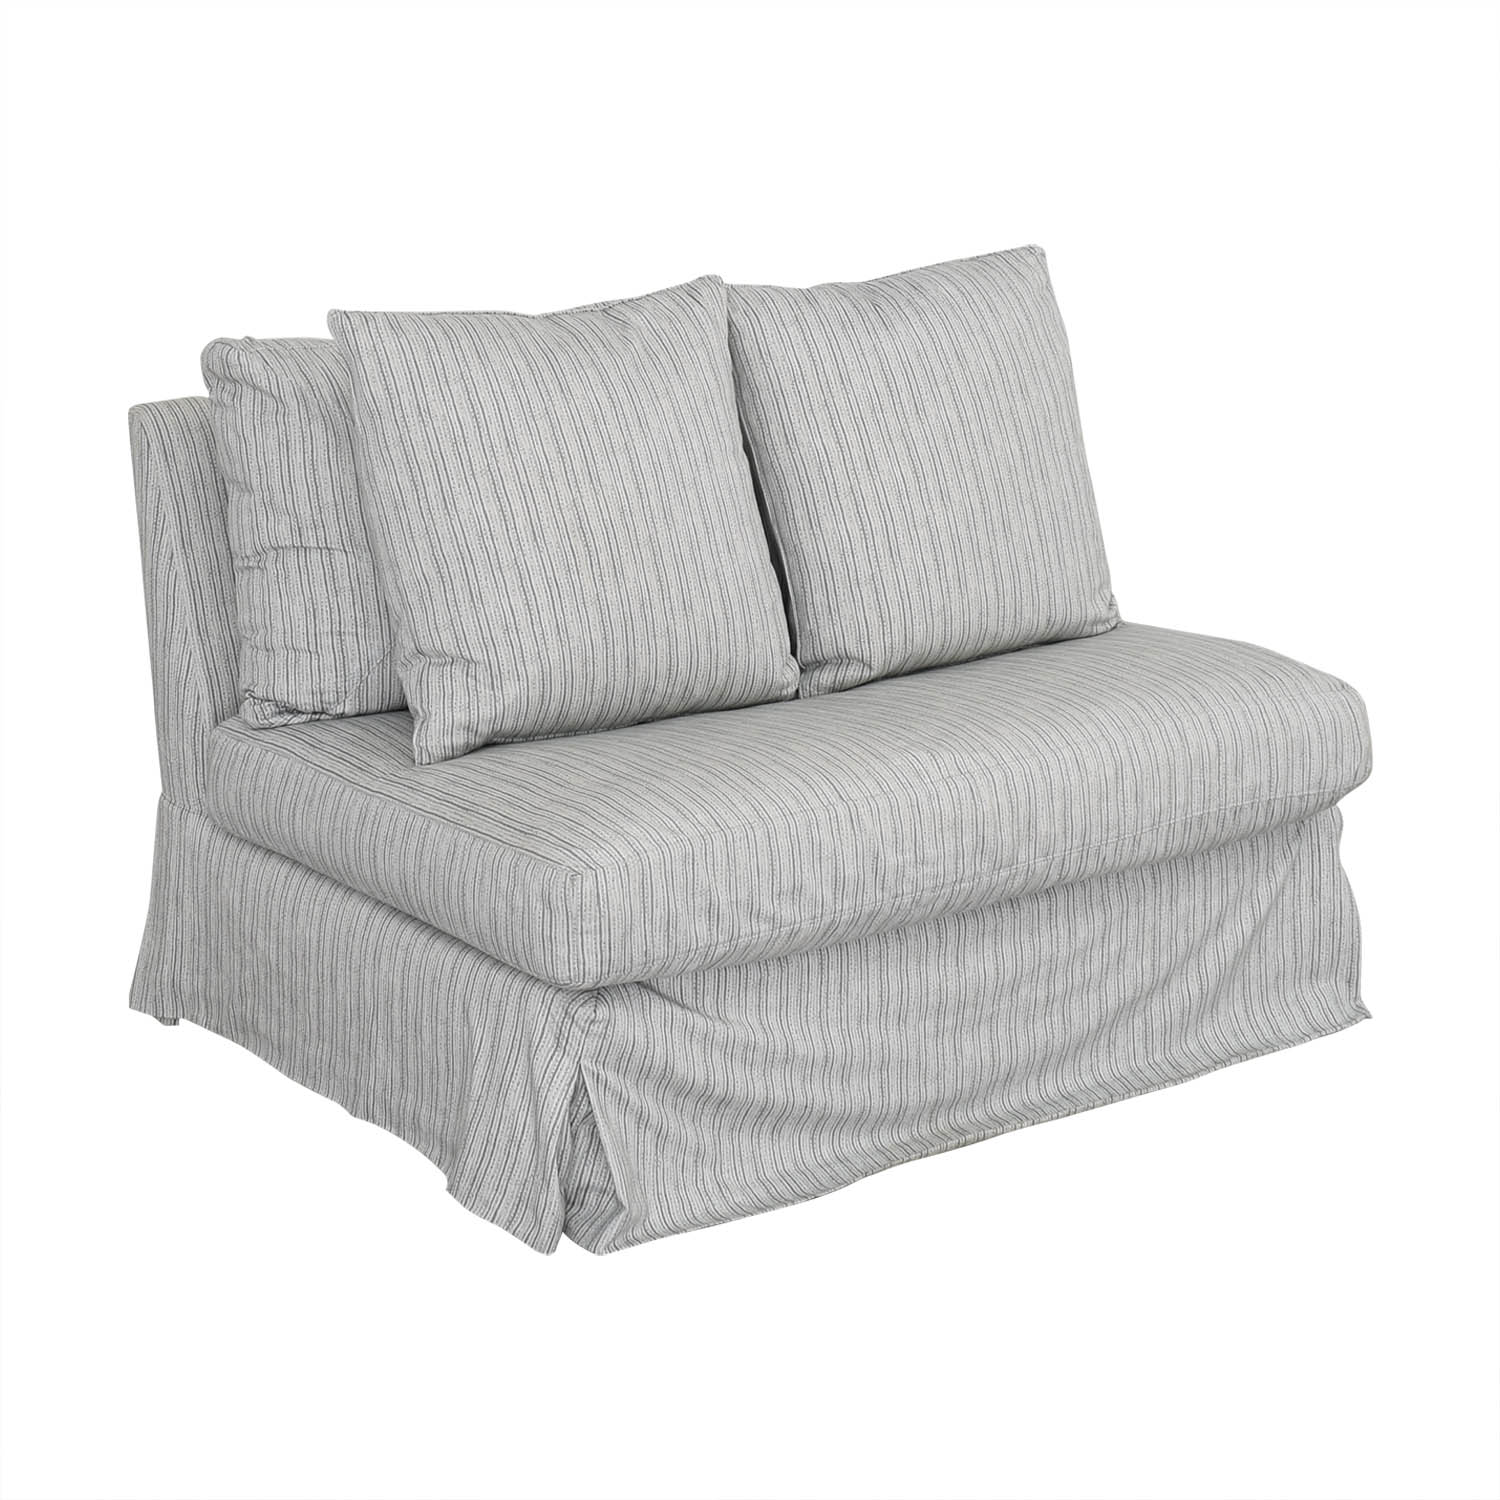 Cisco Brothers Cisco Brothers Minimalist Loveseat nyc